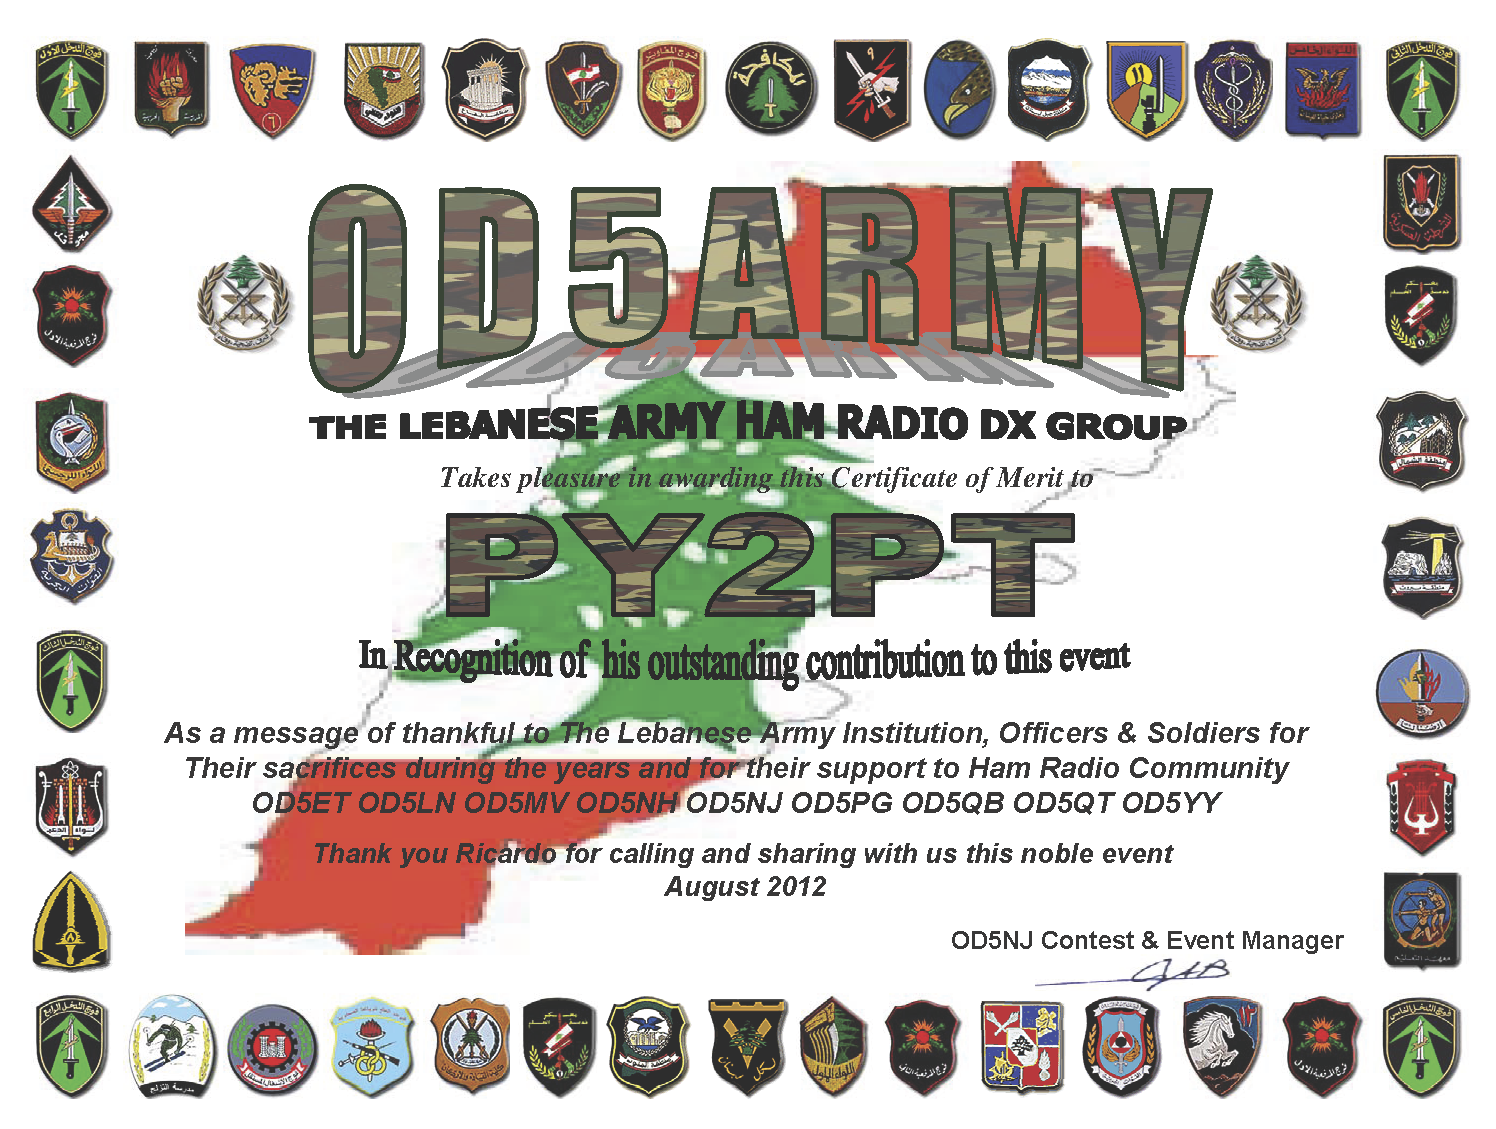 OD5ARMY The Lebanese Army Ham Radio DX Group Vintage Boys Gay Vintage3 Vintage Gays From The Past